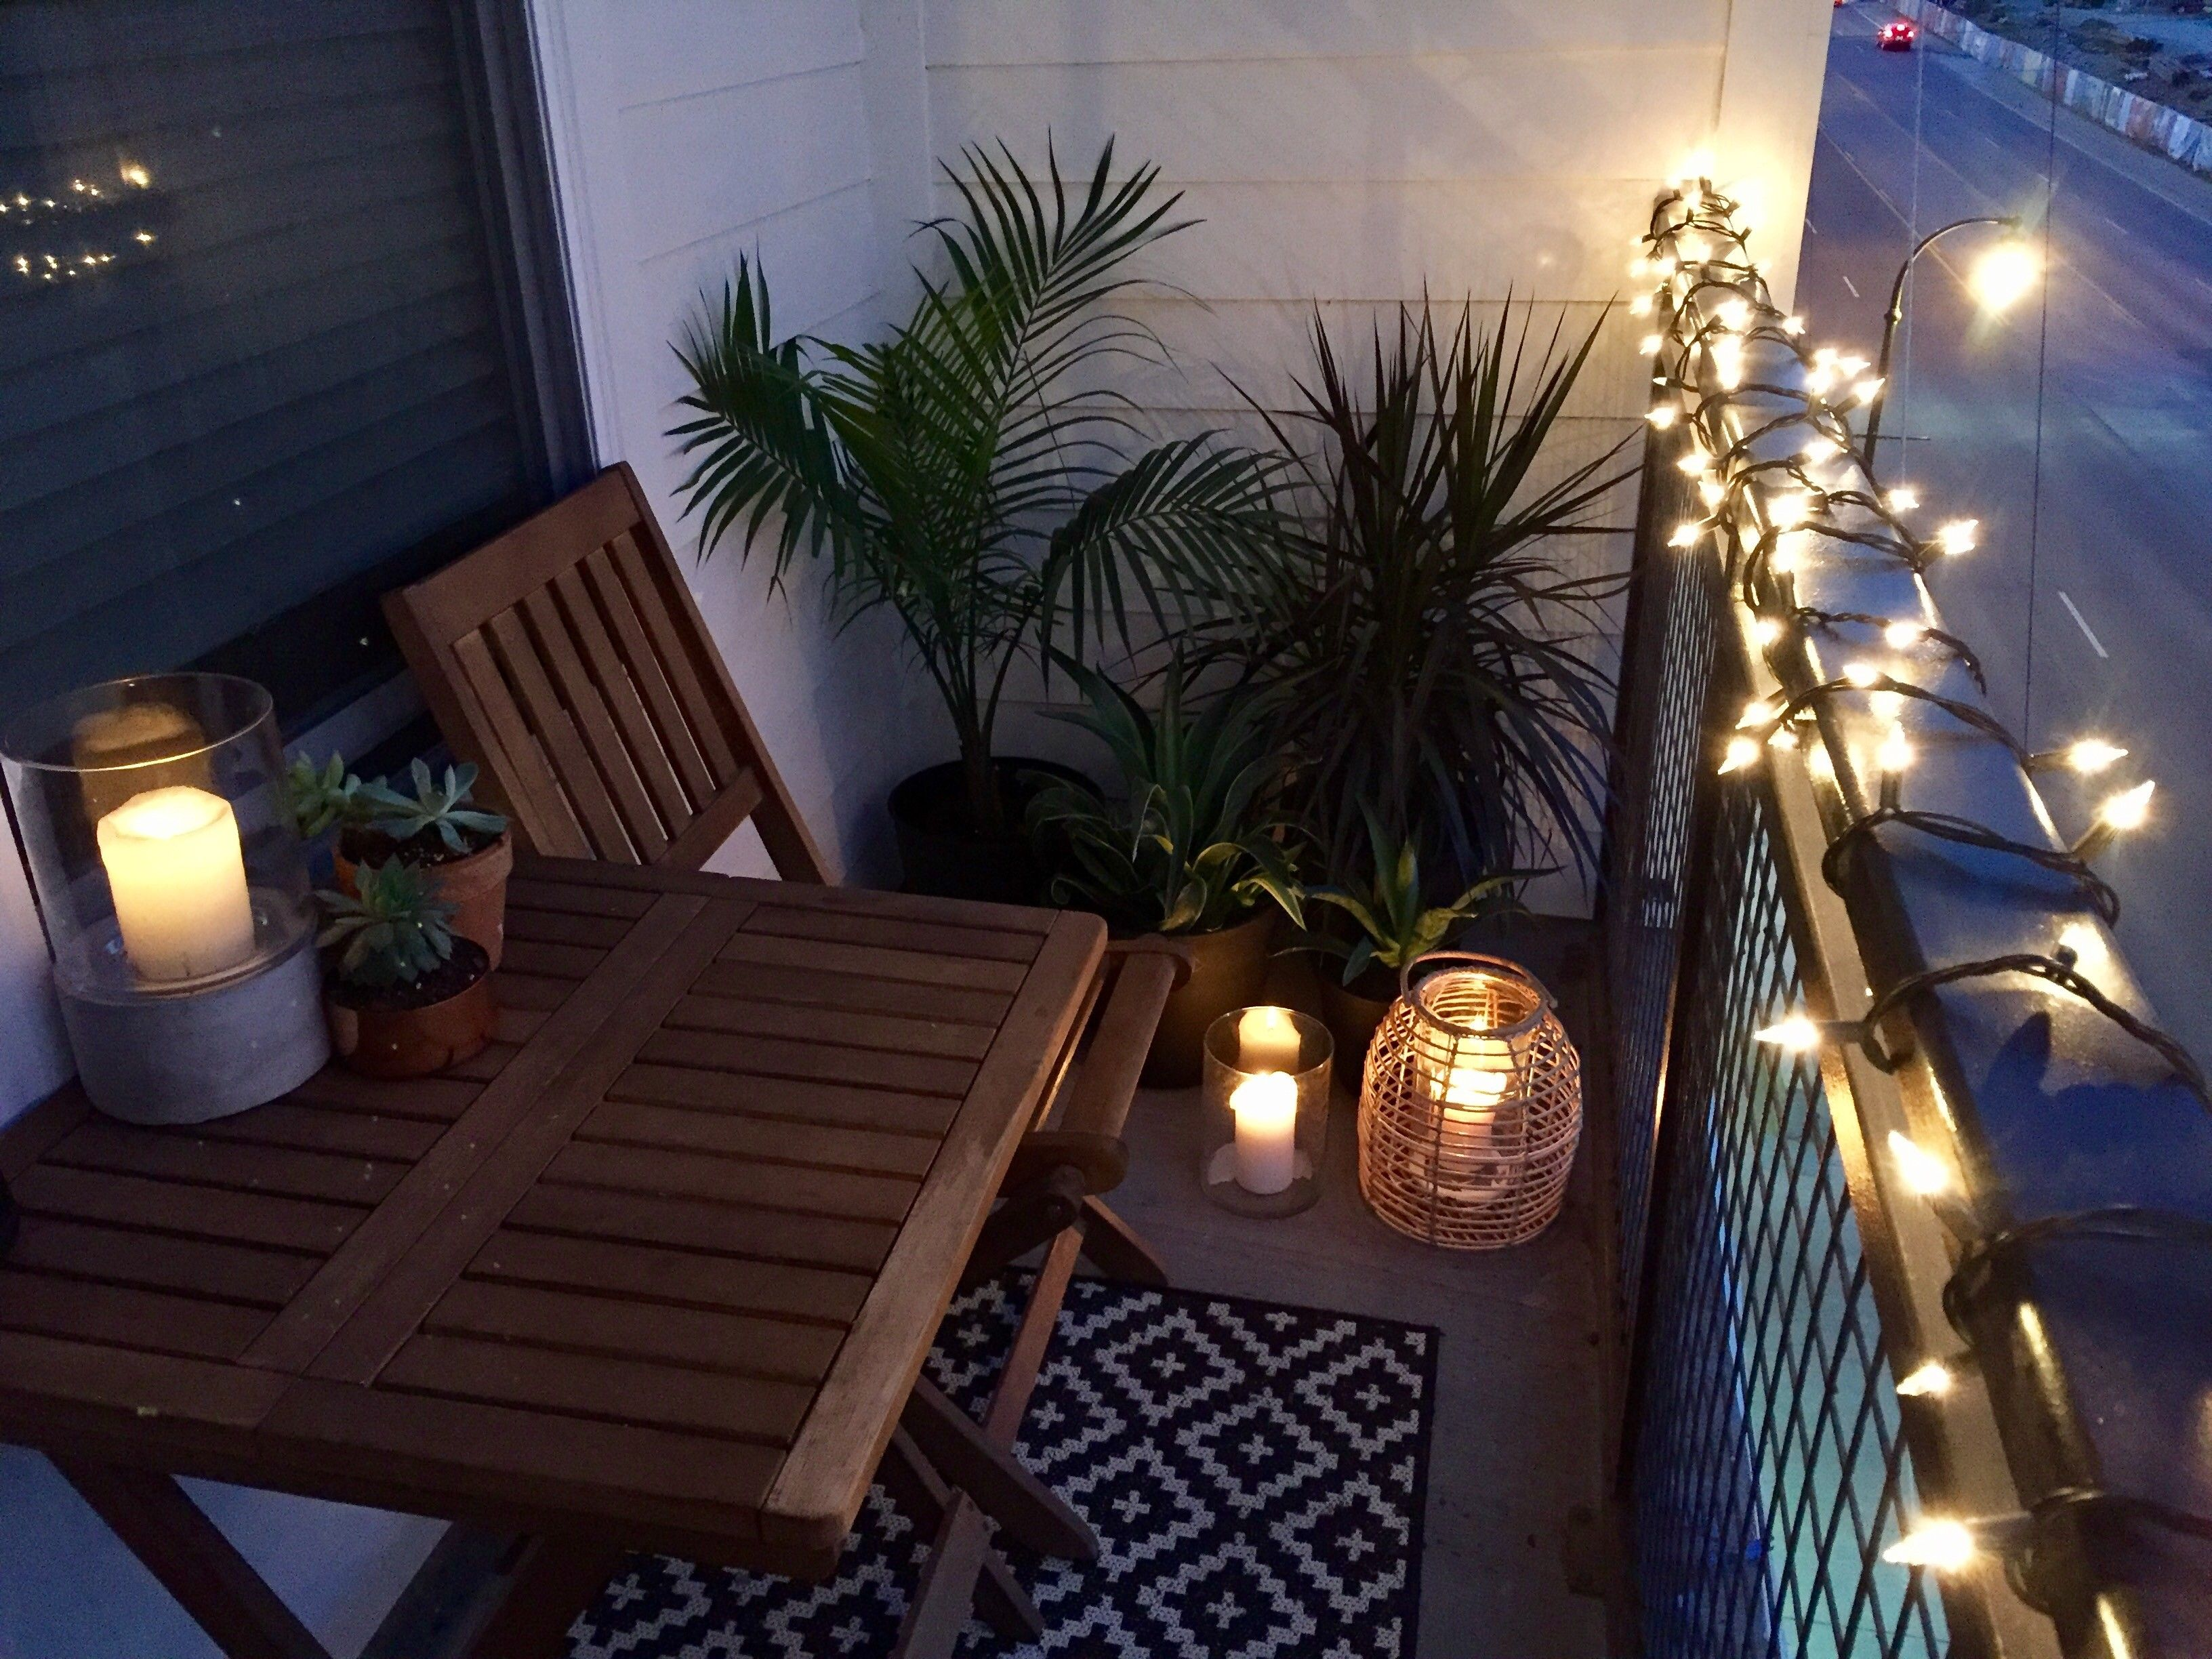 40 romantic balcony ideas for small apartment with images apartment patio decor balcony on christmas balcony decorations apartment patio id=36011